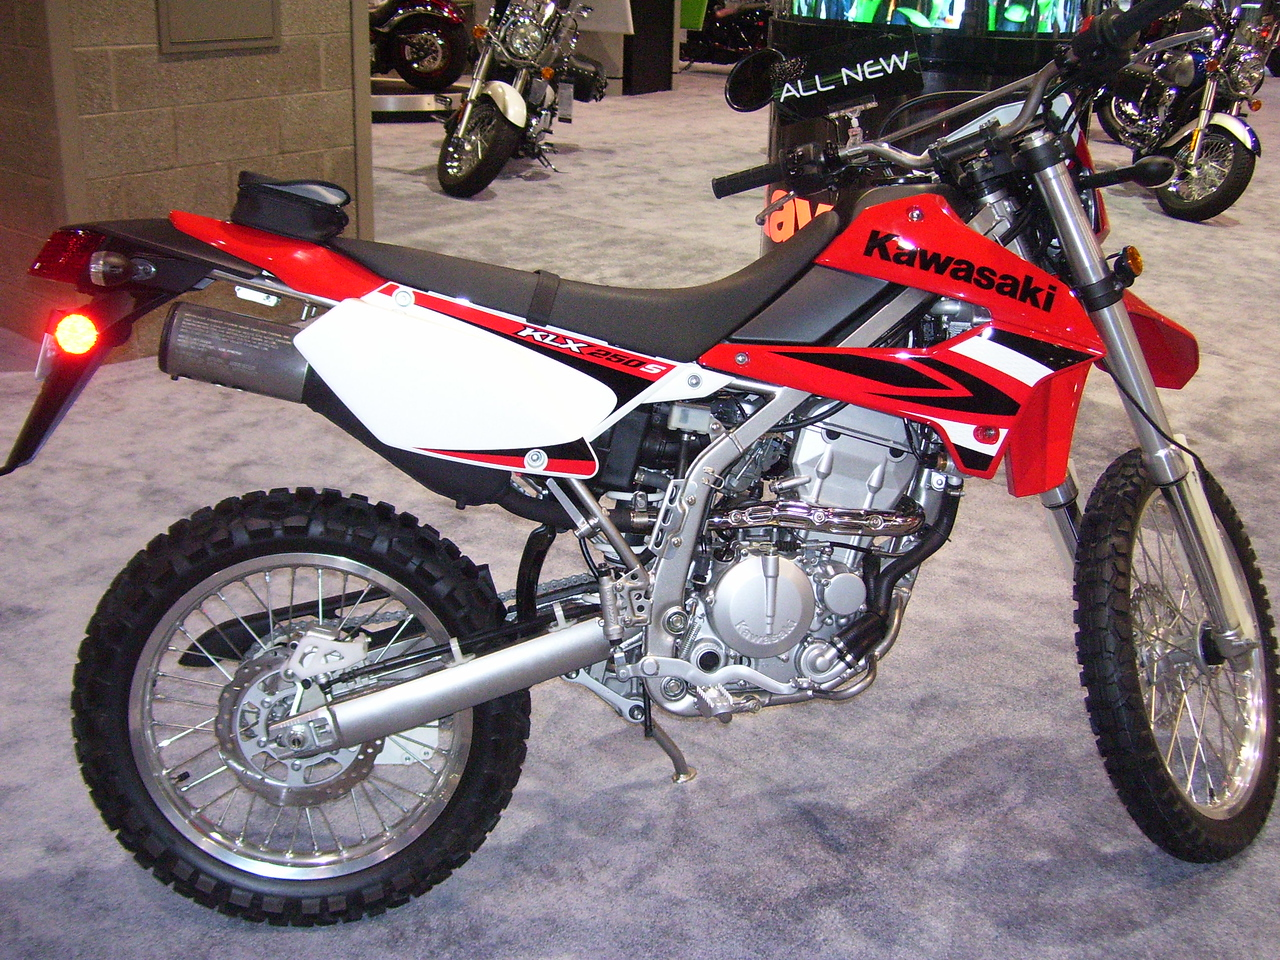 KLX 250S in red paint.